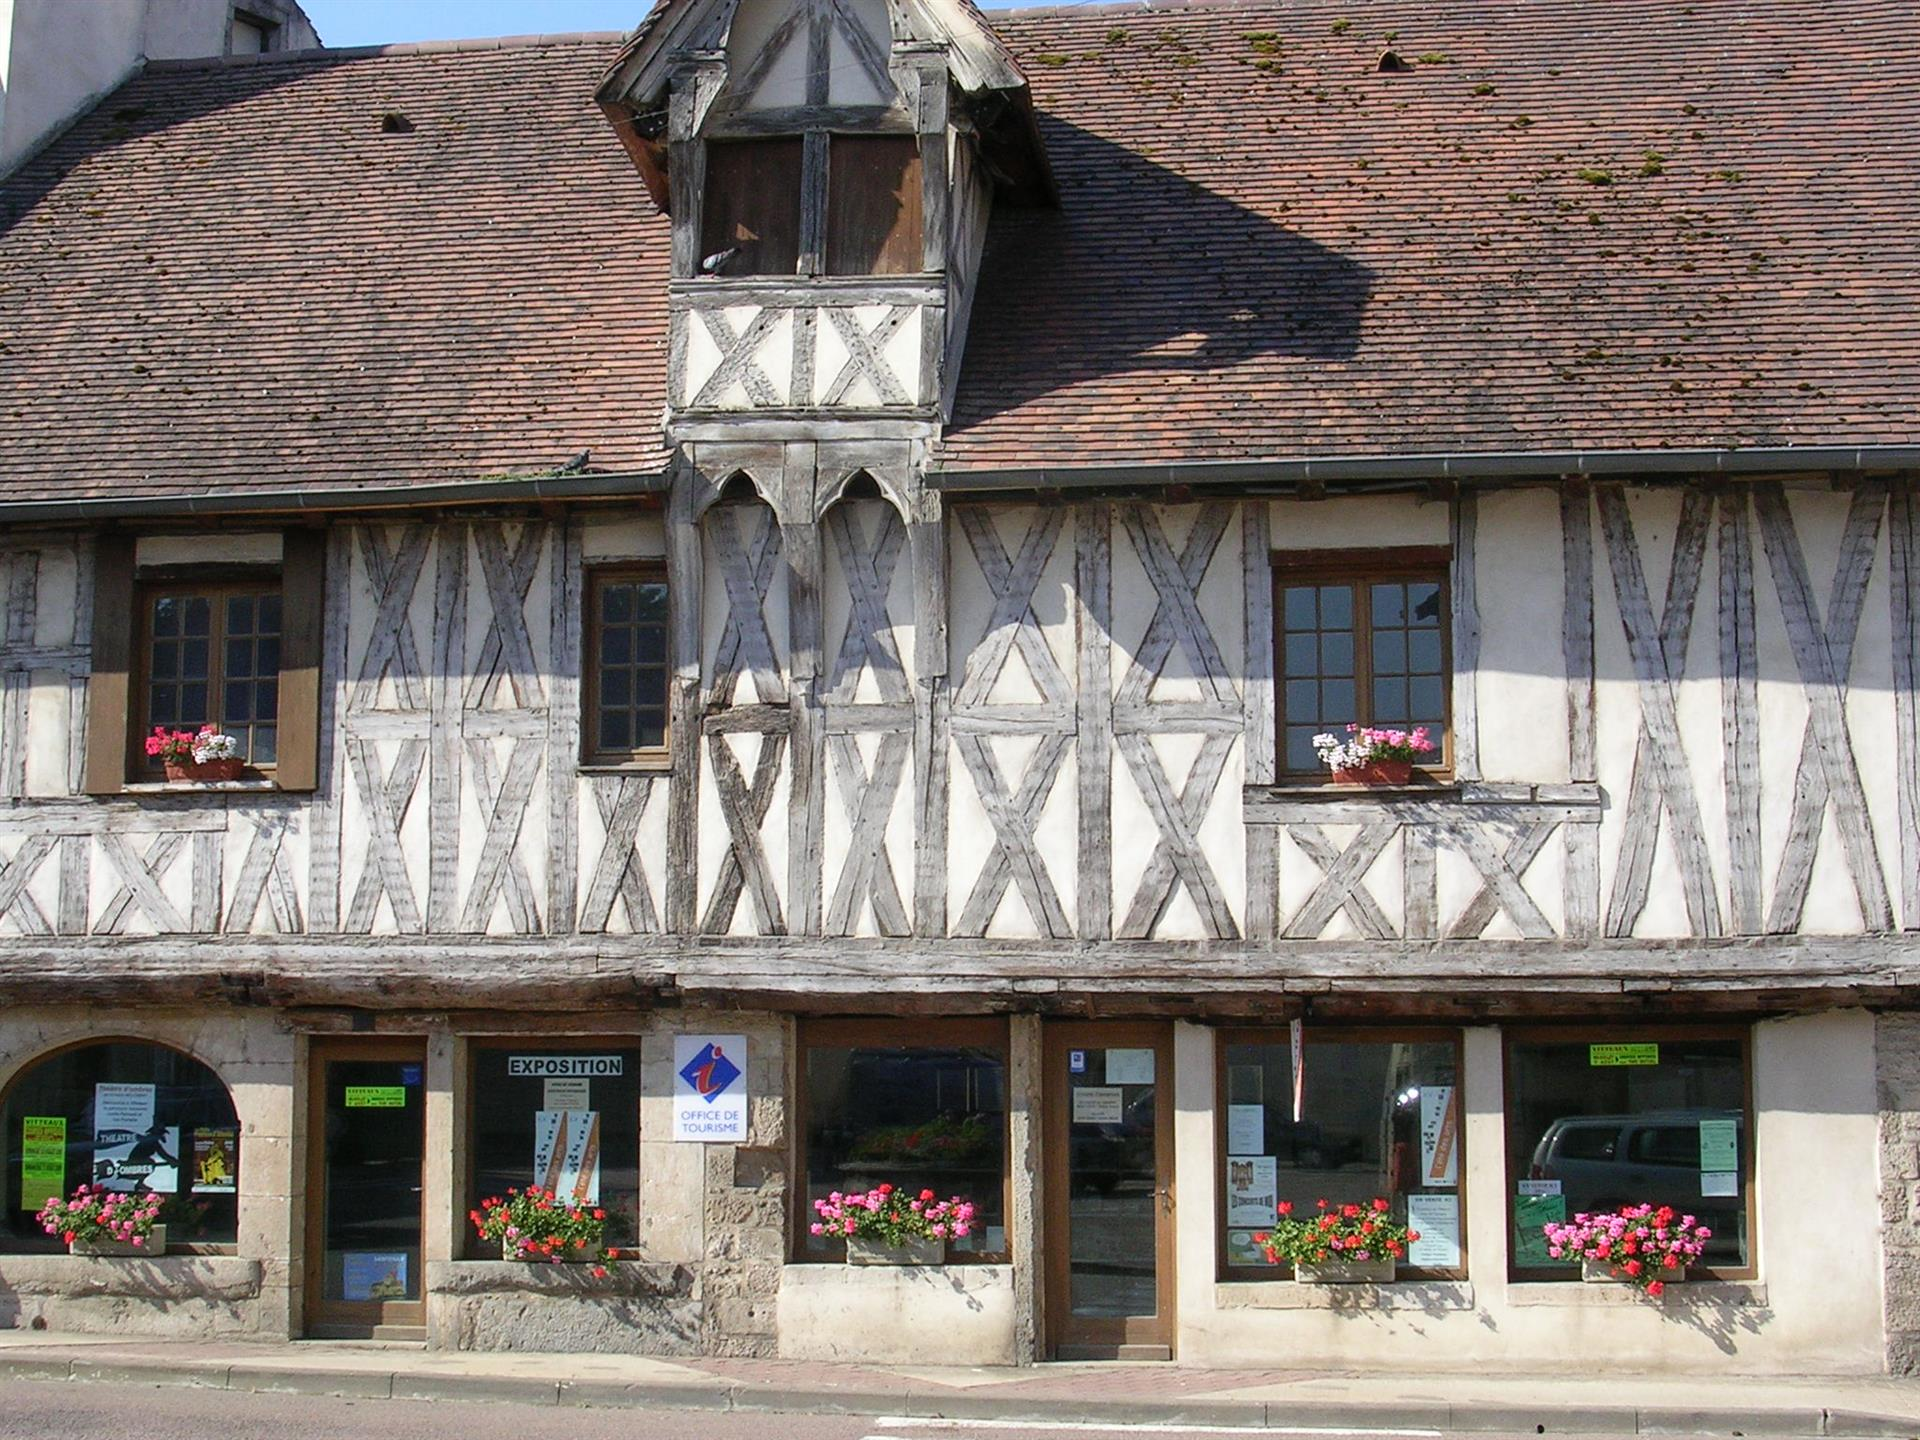 Office de tourisme - OFFICE DE TOURISME DE VITTEAUX©A GAUTHERIN